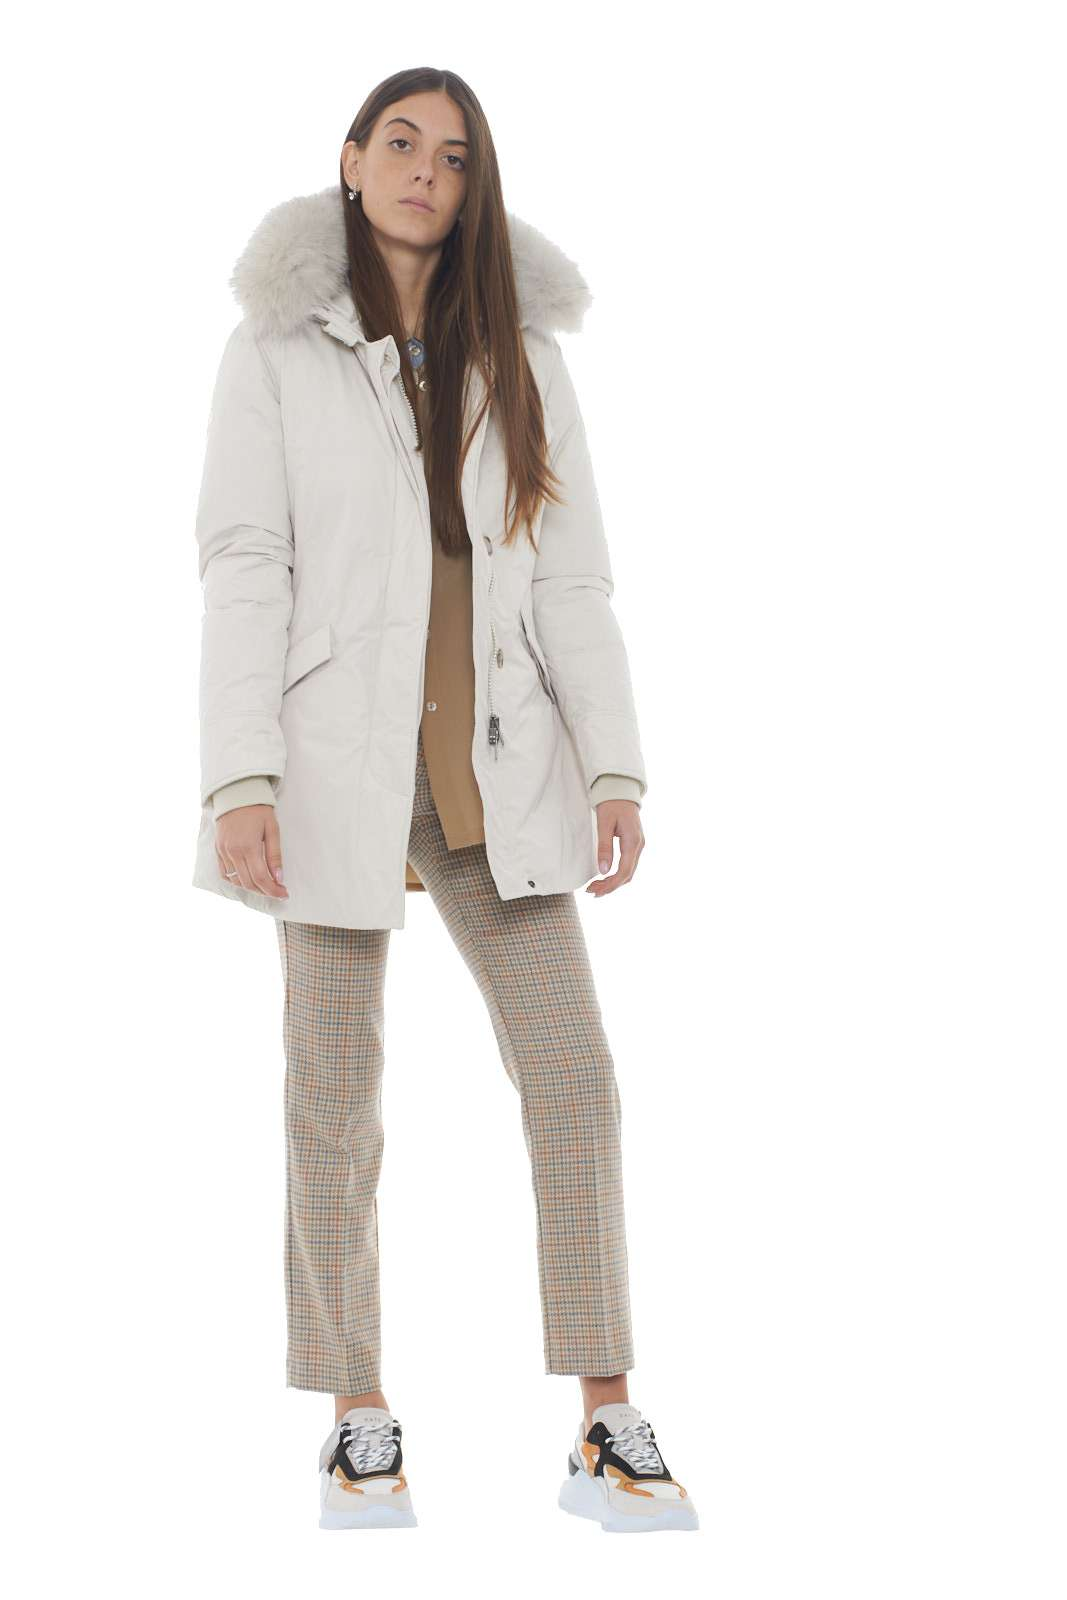 https://www.parmax.com/media/catalog/product/a/i/AI-outlet_parmax-parka-donna-Woolrich-wwcps2834-D.jpg